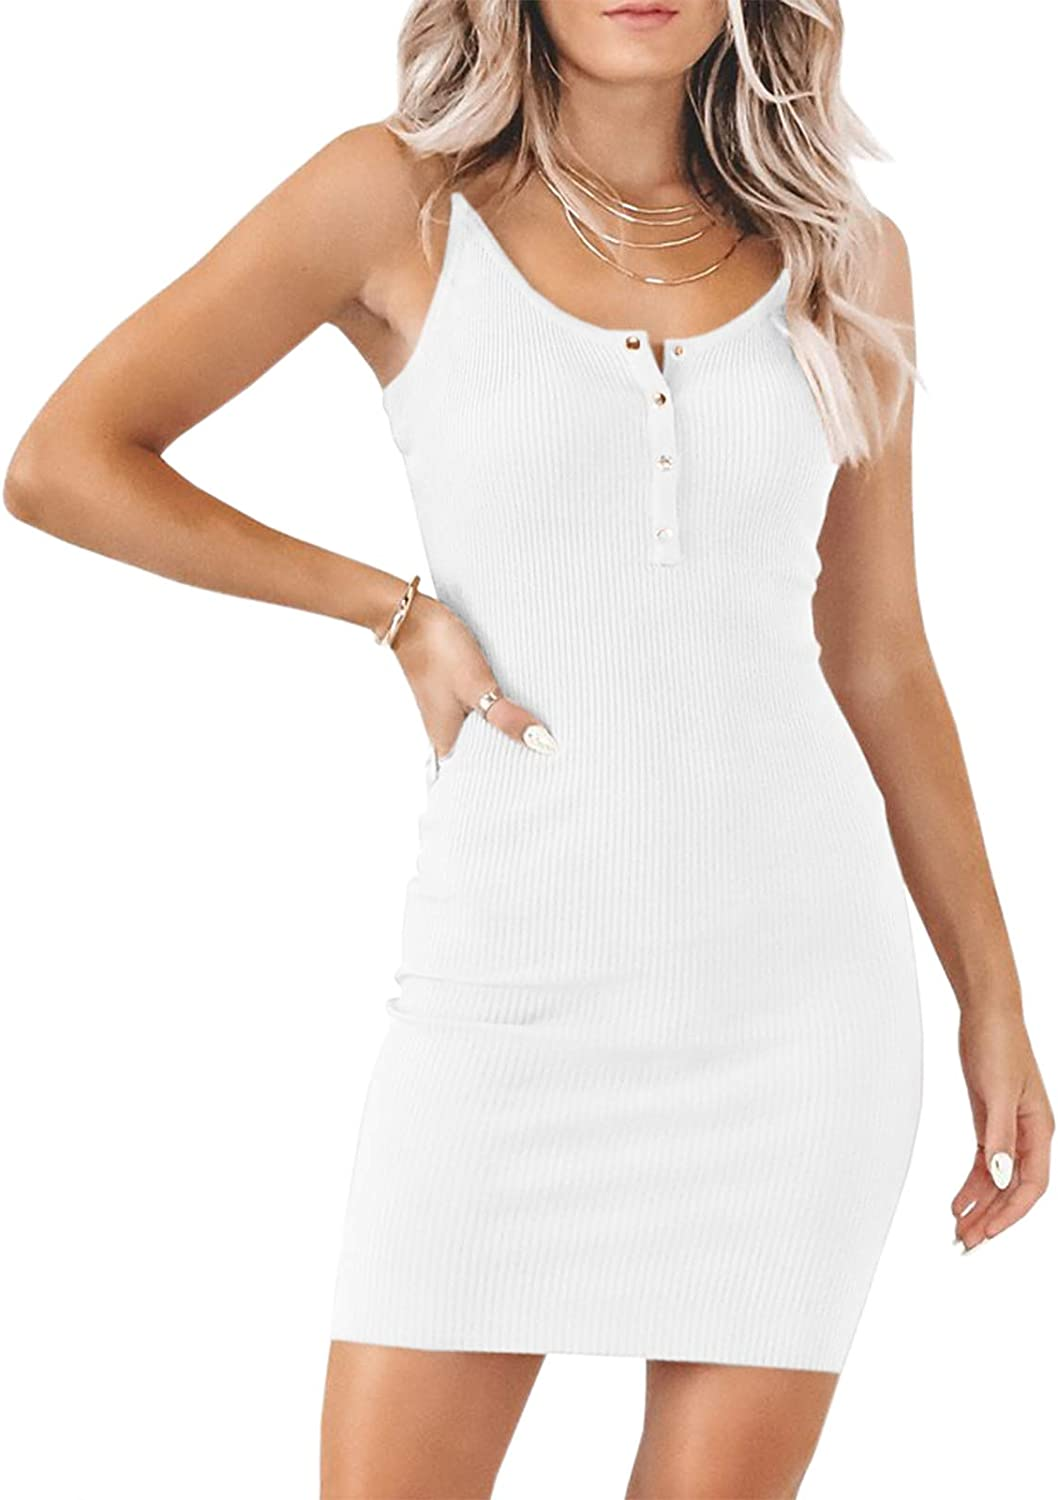 Soulomelody Women Summer Dress Cocktail Bodycon Sexy Party Tank Dress Button Down Cami Mini Dresses